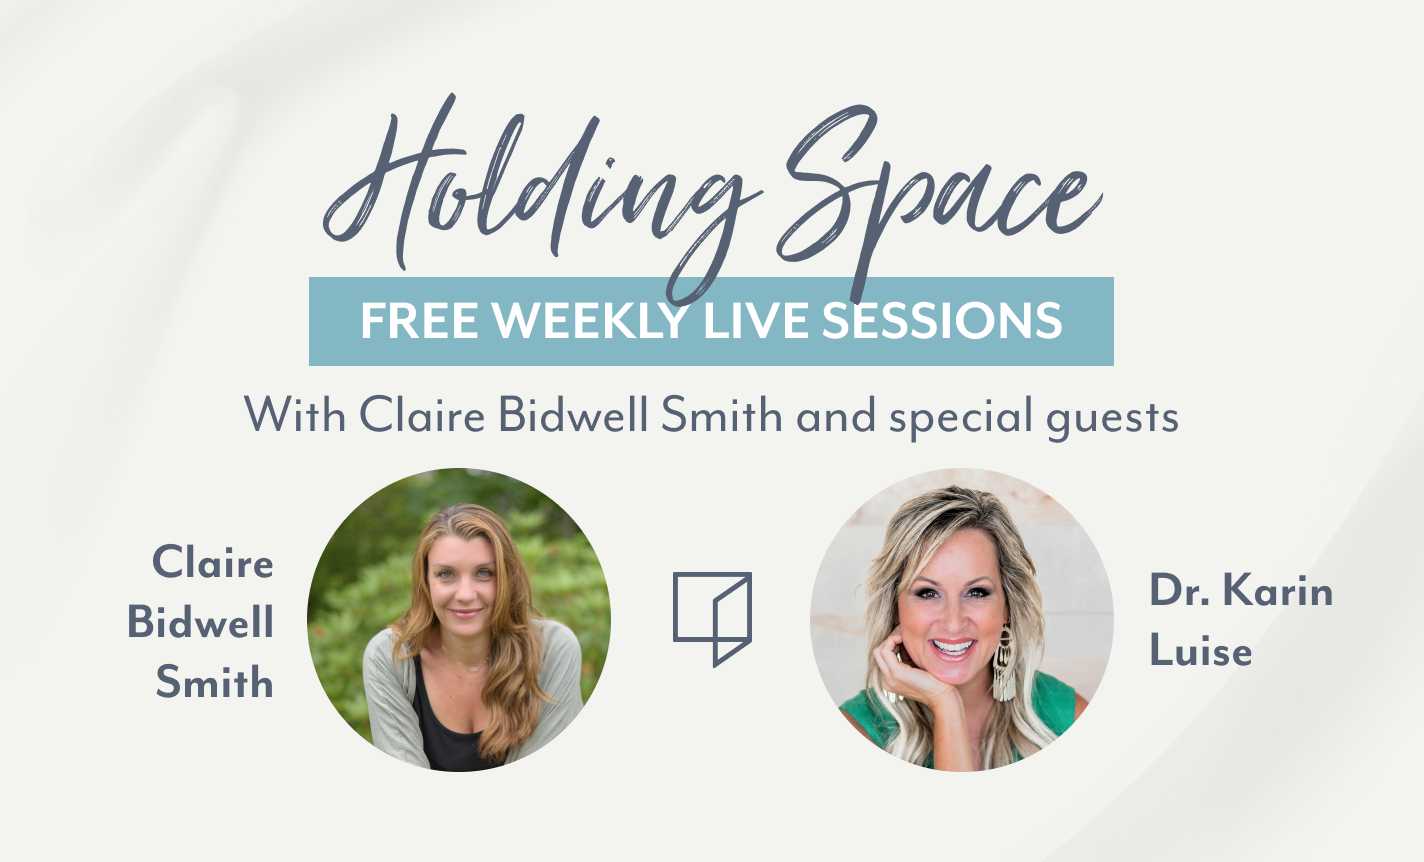 Holding Space with Claire Bidwell Smith and Karin Luise